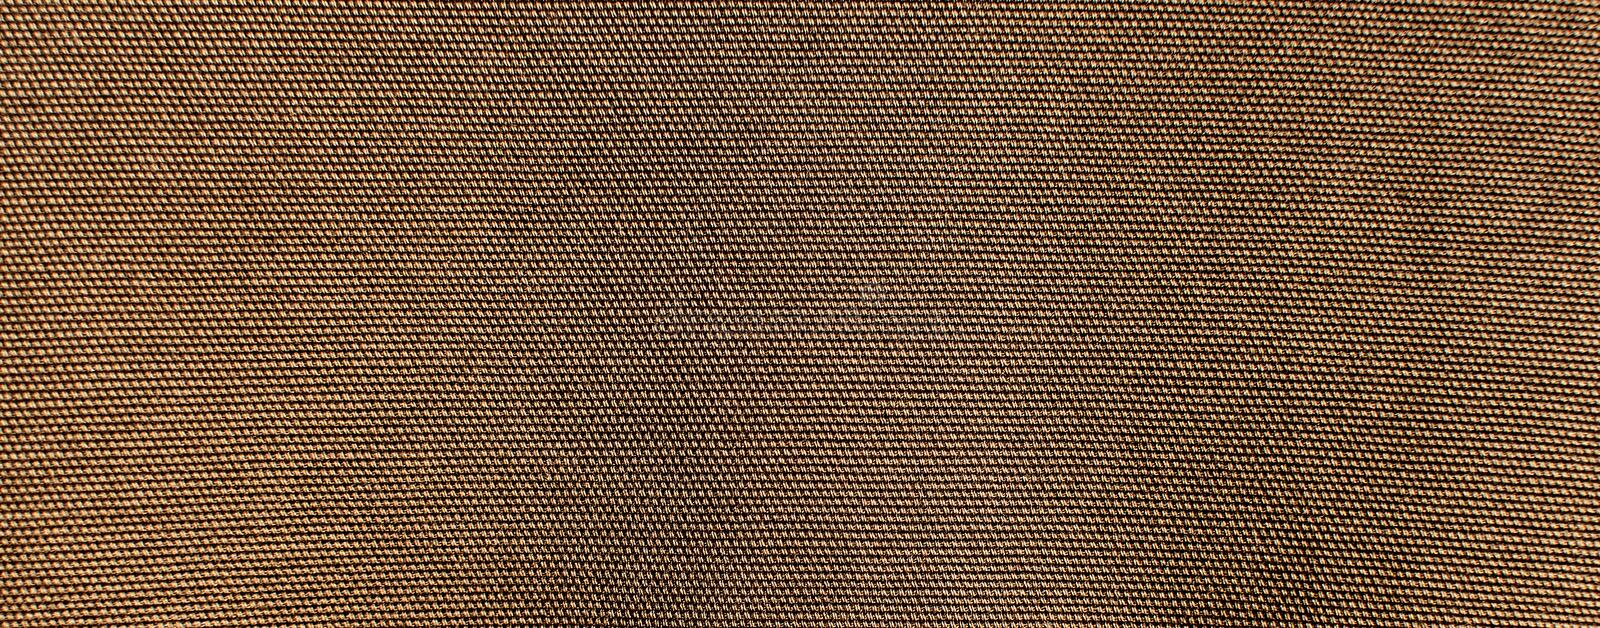 The textured background or wallpaper from rough fabric of khaki color royalty free stock photo